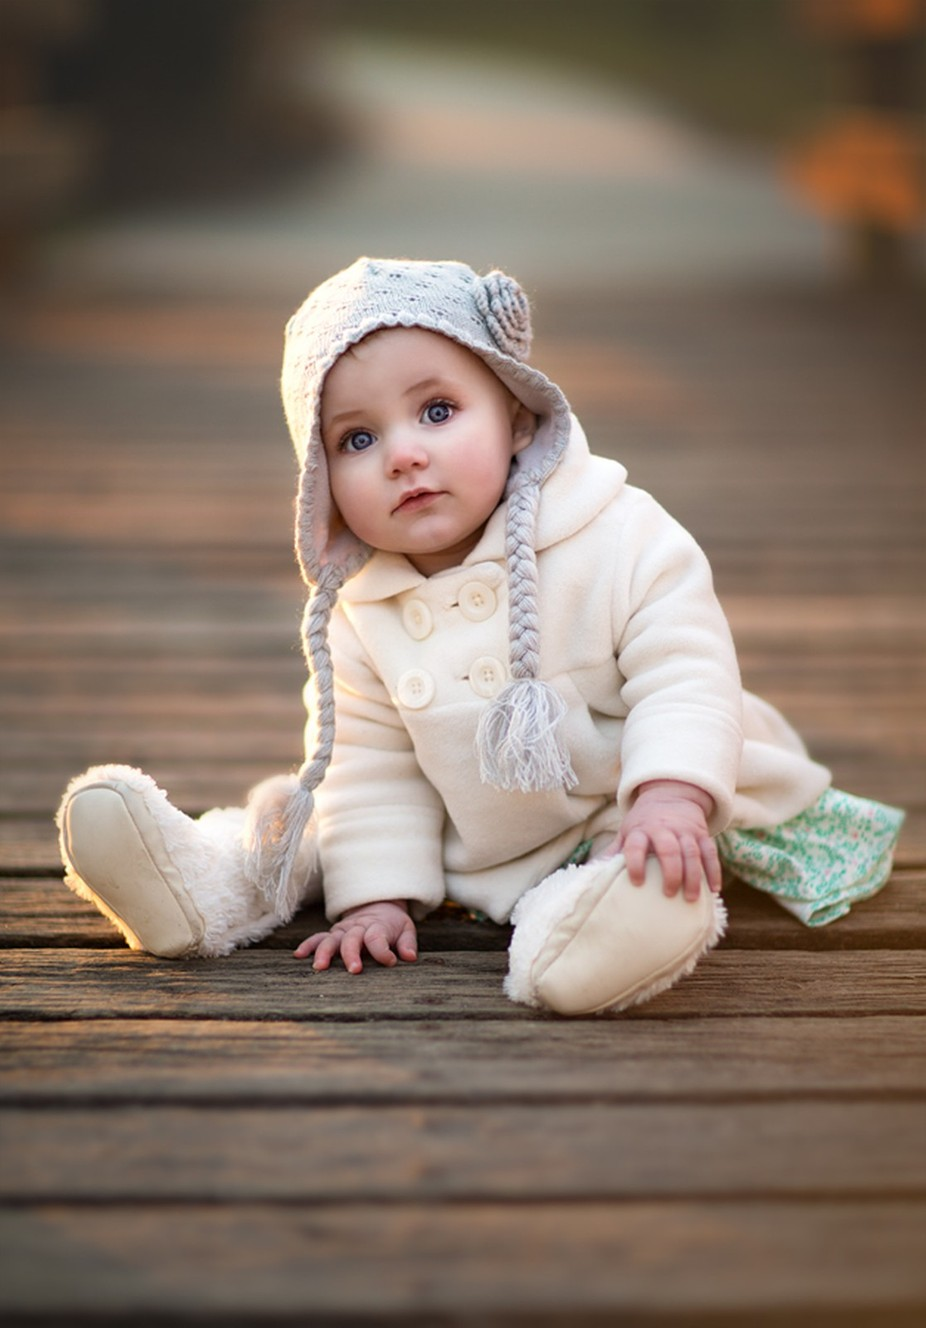 Cutie by tatjanakaufmann - Anything Babies Photo Contest